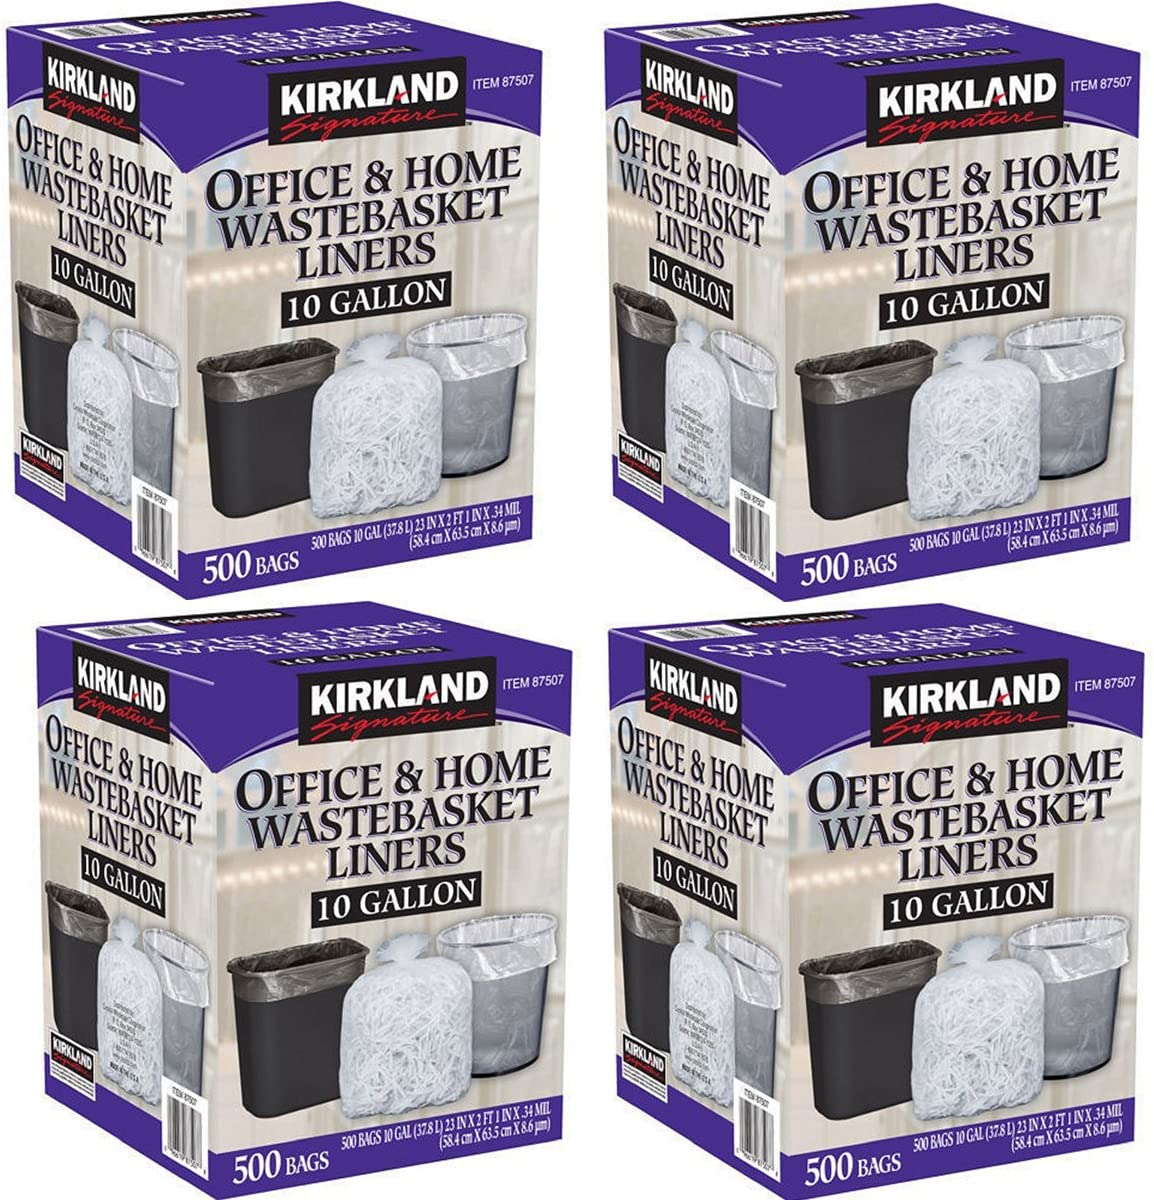 Kirkland Signature Made in USA 10 Gallon Clear Wastebasket Liner Bags for Trash Can 500 Count, 4 Pack